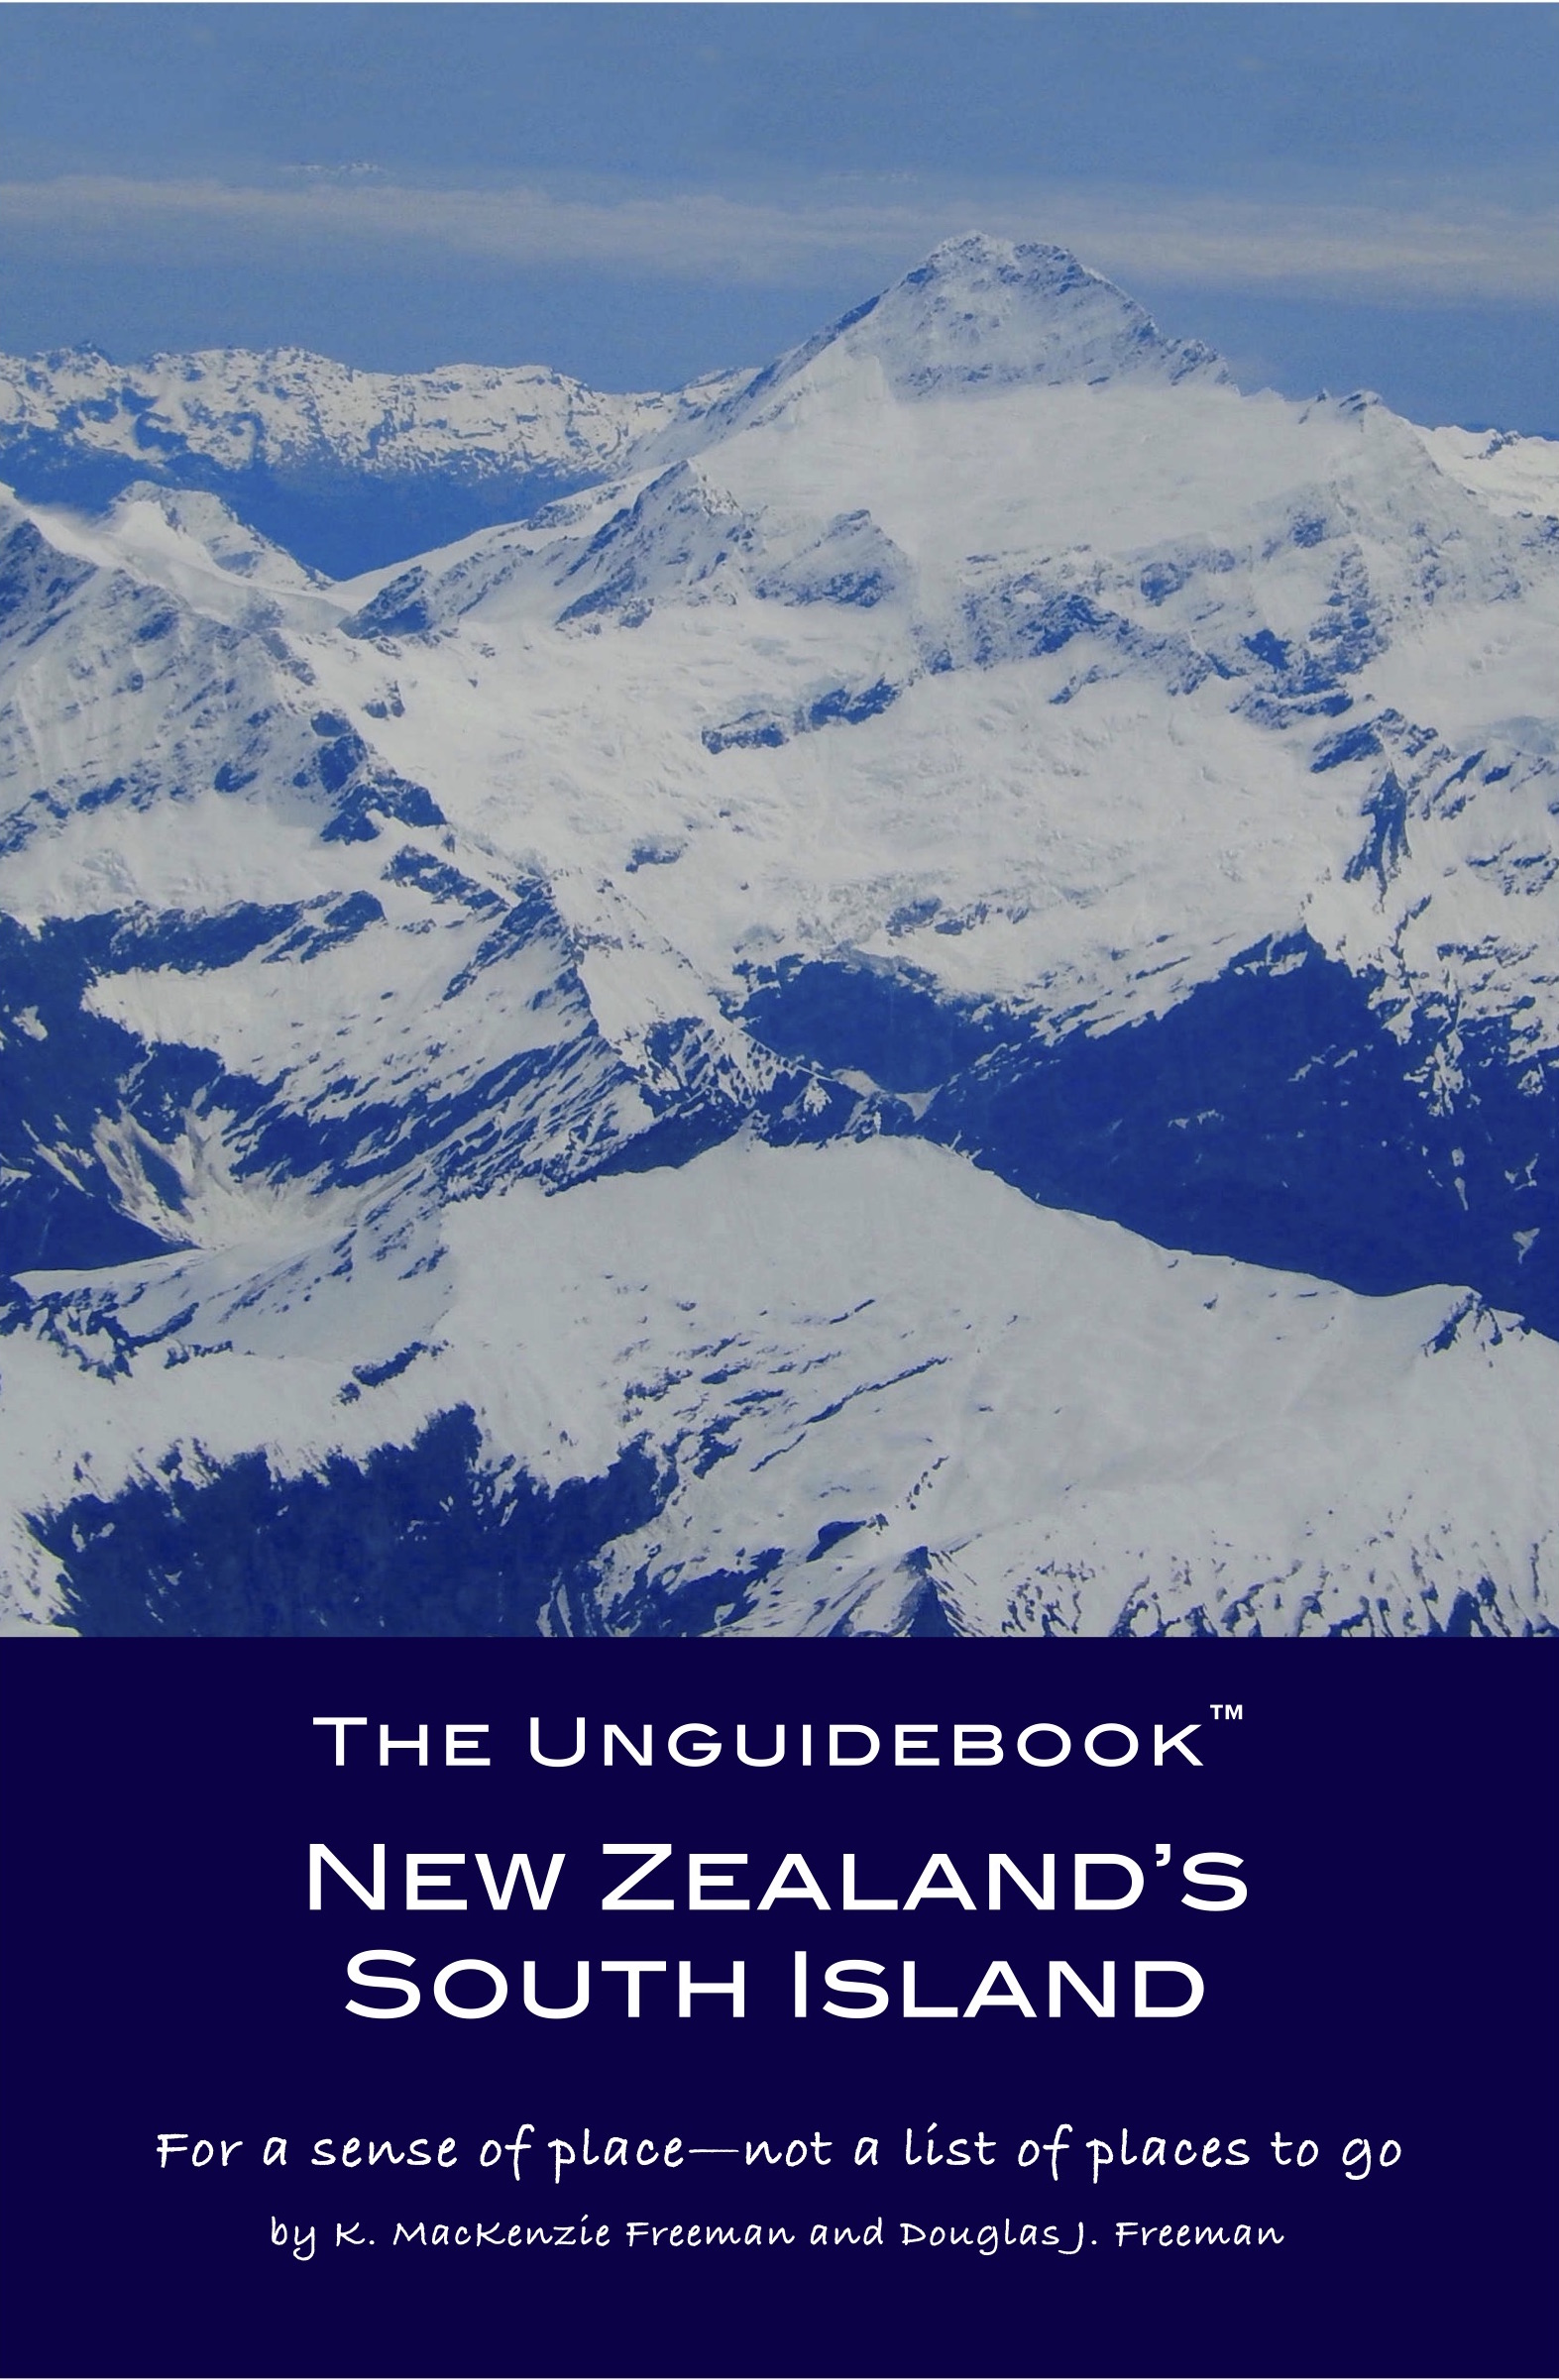 "- New Zealand's a place you'll want to savor, one island at a time. That's why this book includes 54 enlightening and entertaining impressions just about the South Island. Soak up Queenstown's scenery and adventure sports. Give into the Otago region's temptations of wines and gold panning. Travel to Te Anau for an up-close look at the amazing Fiordland National Park. Experience the warmth of sunny Nelson. Then set sail or tramp through Abel Tasman National Park, the Tasman District and the picture postcard Marlborough Sounds.The Unguidebook New Zealand's South Island will ""take you"" to this special place filled with jaw-dropping scenery, warm hospitality and endless adventures.Available as an e-book for $3.99 and in paperback for $7.50."